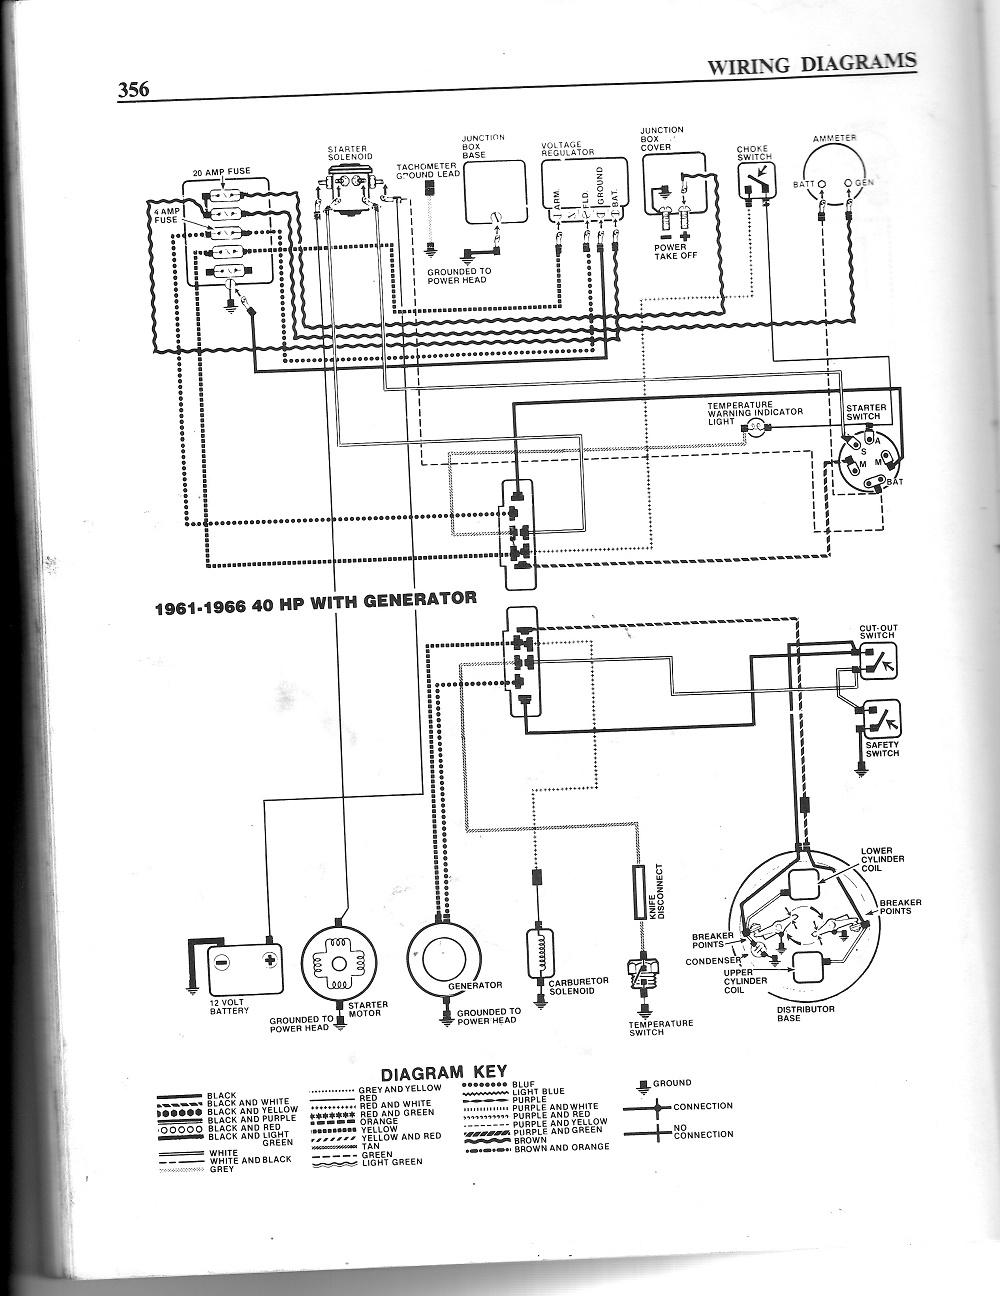 50 Horsepower Mercury Wiring Diagram. Mercury. Auto Wiring